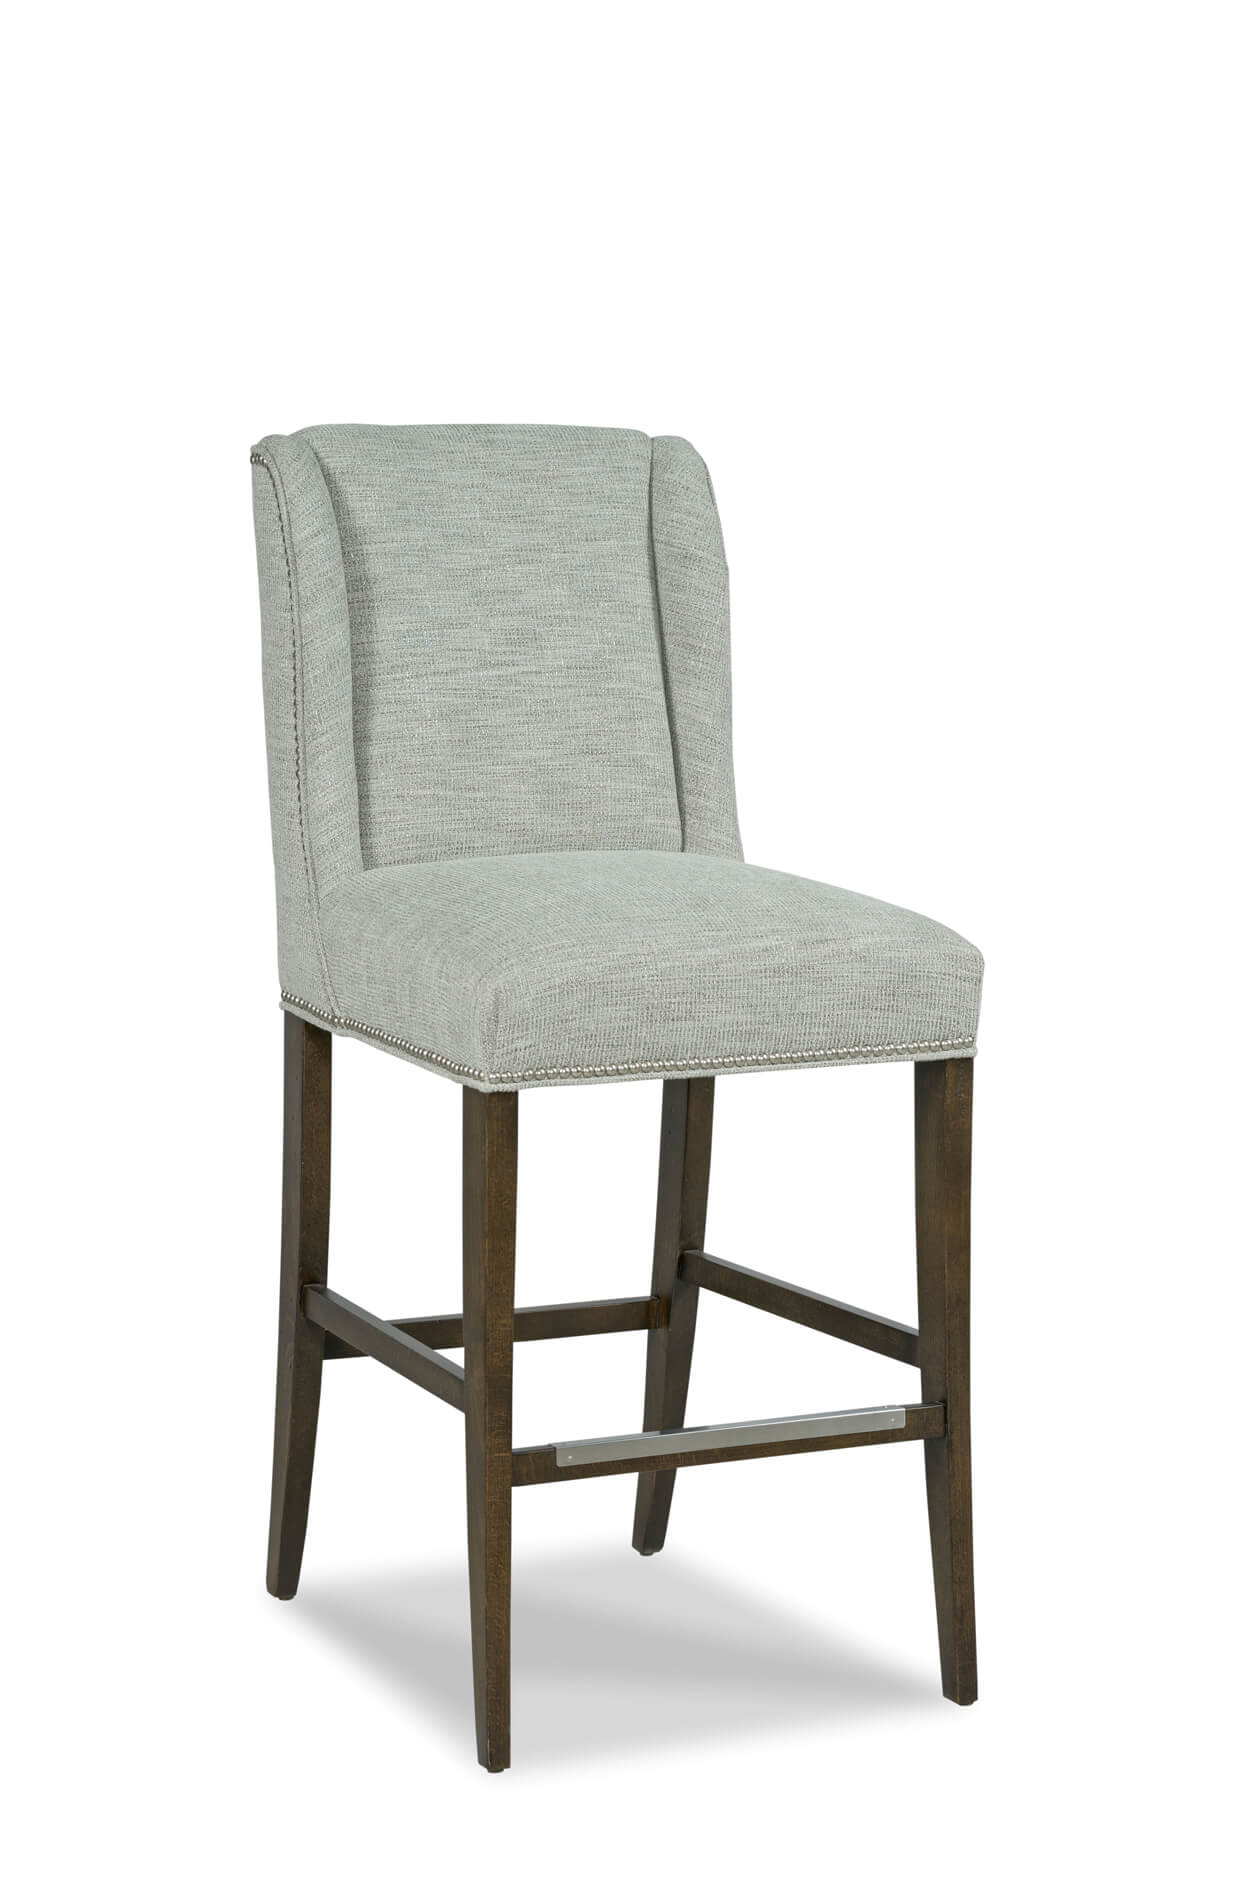 Fairfield's Dora Upholstered Wooden Bar Stool with Back